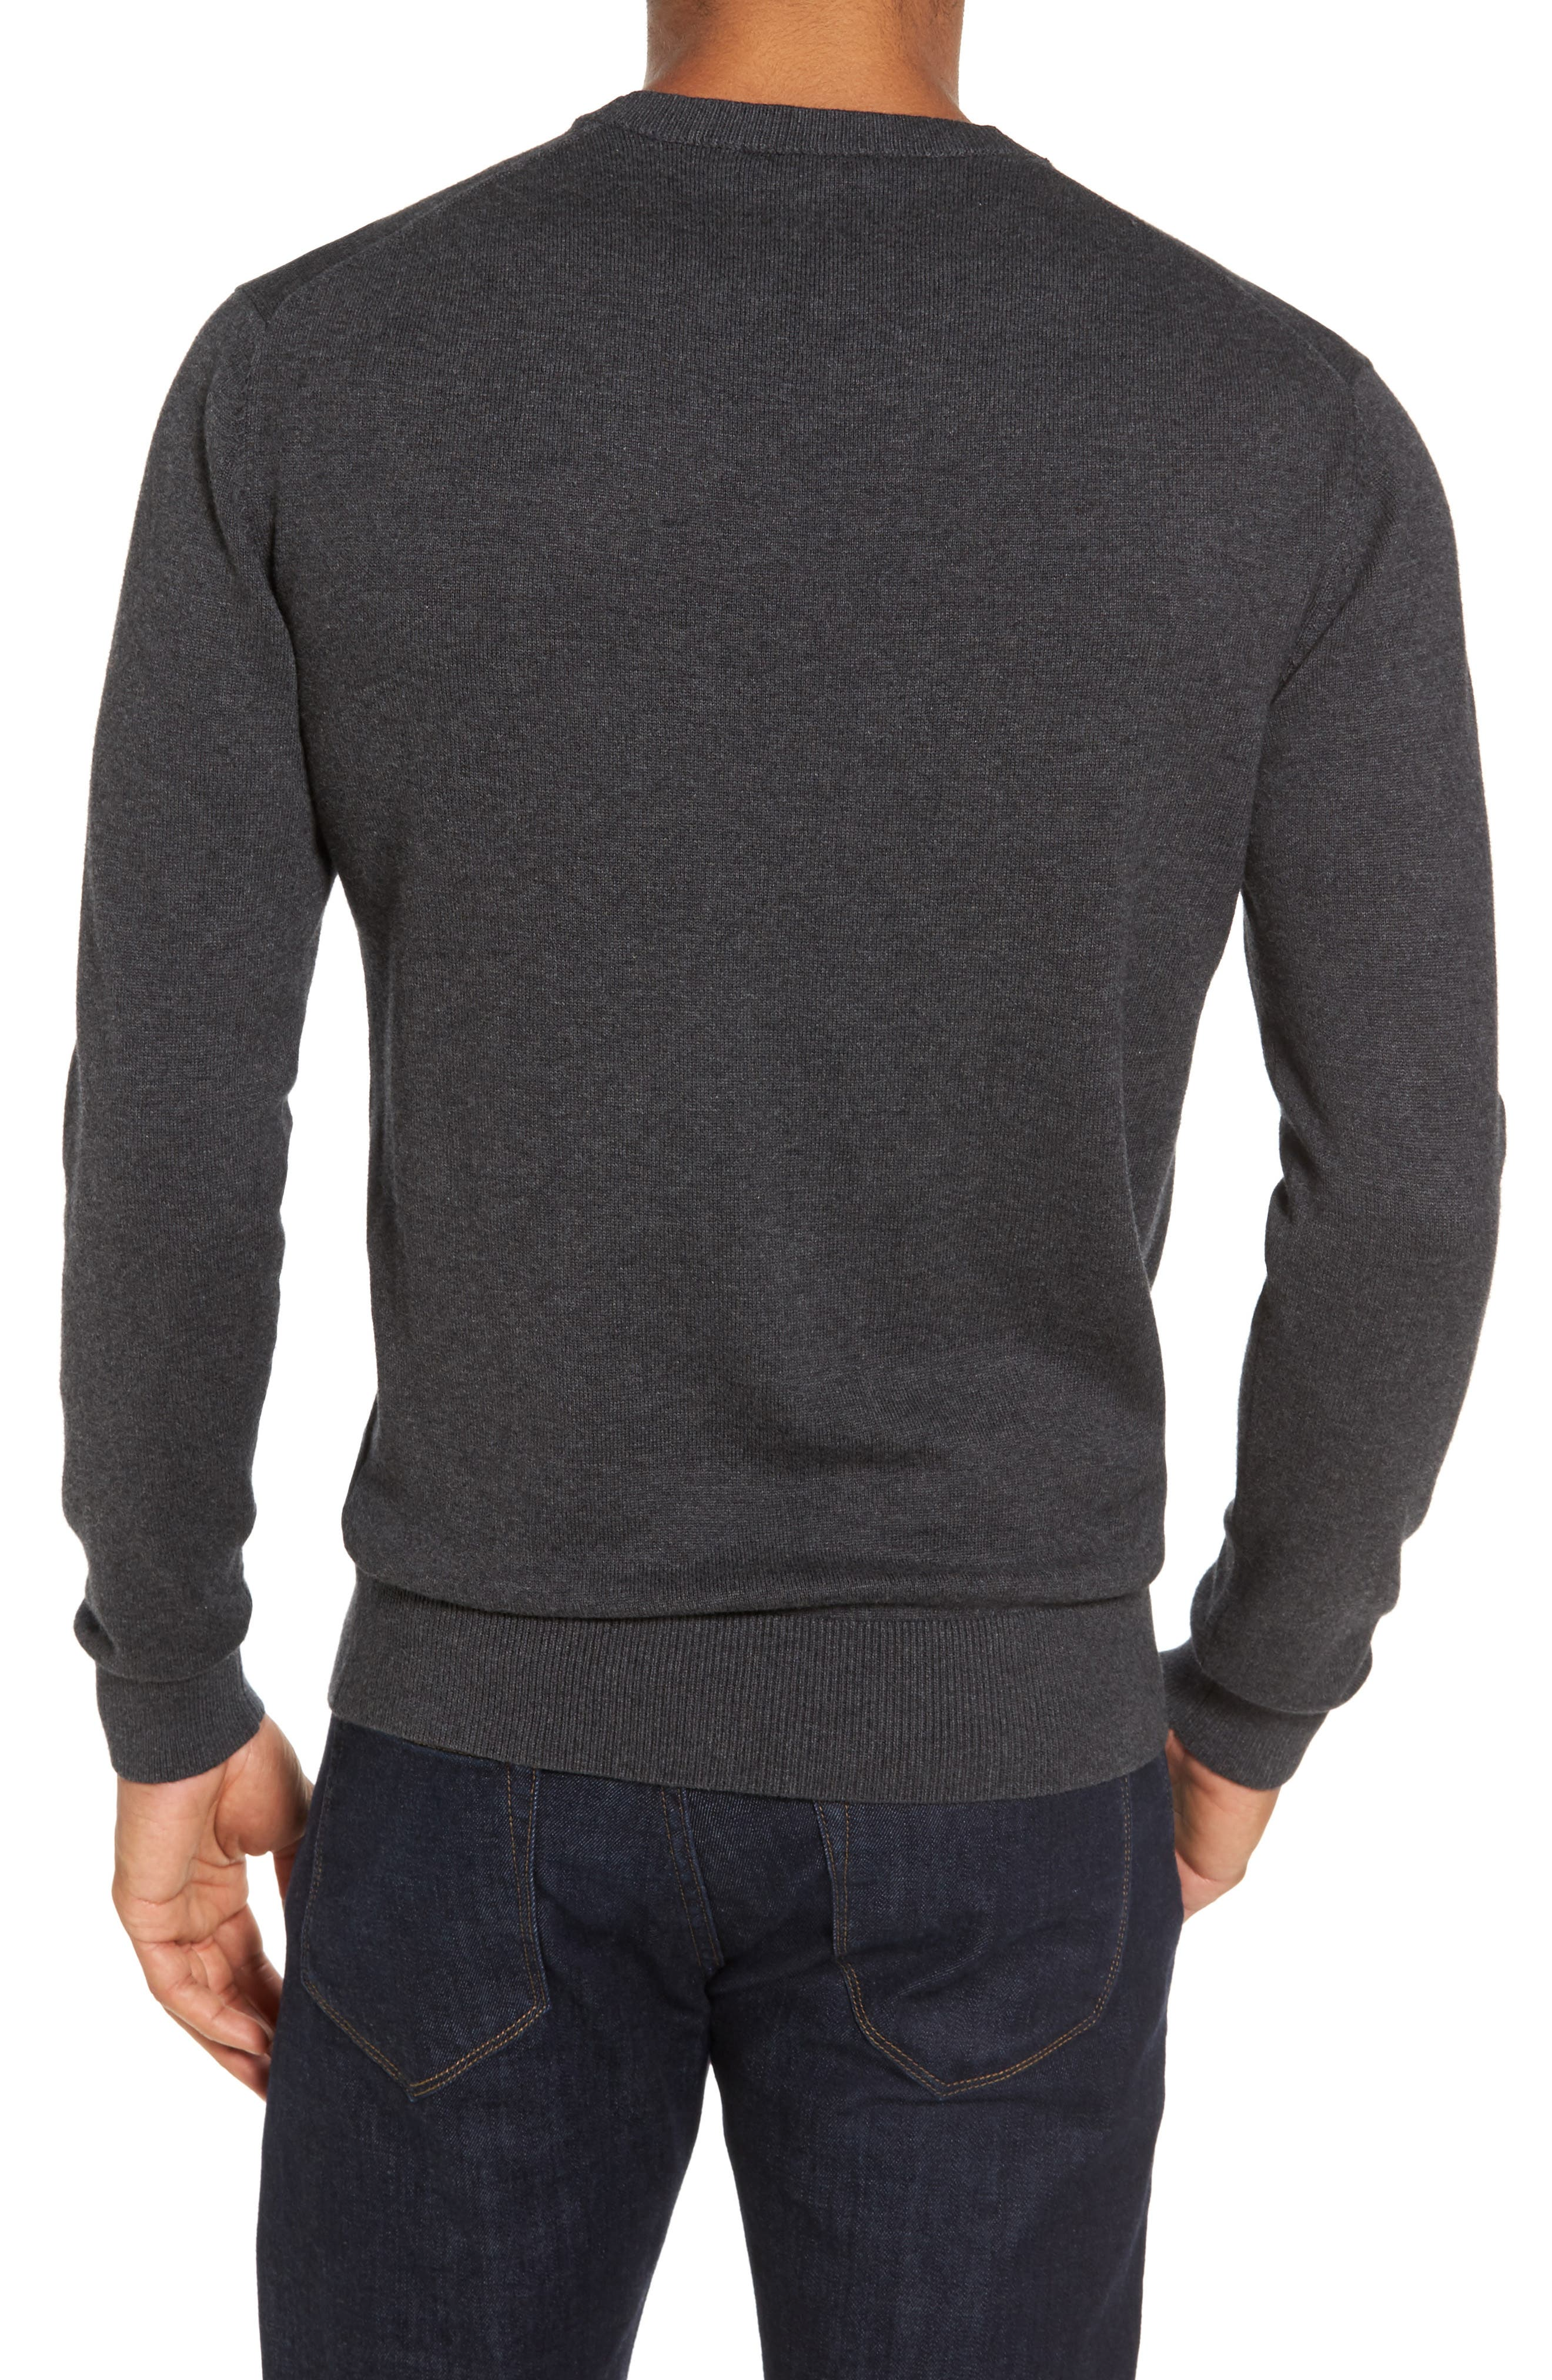 Portrait Crewneck Sweater,                             Alternate thumbnail 2, color,                             015